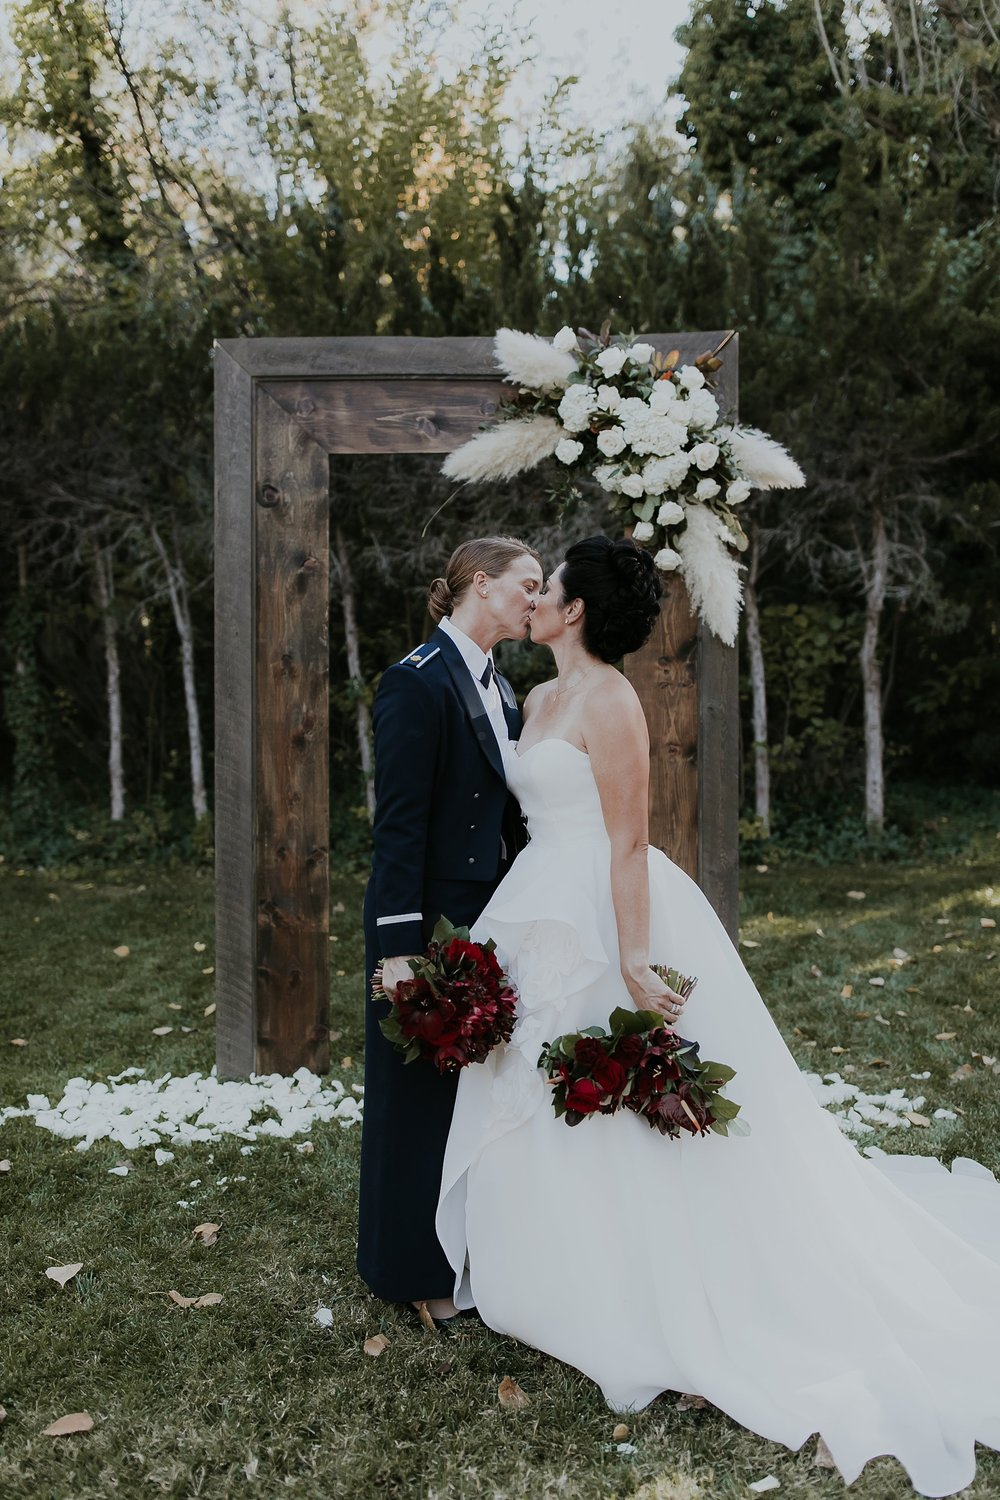 Alicia+lucia+photography+-+albuquerque+wedding+photographer+-+santa+fe+wedding+photography+-+new+mexico+wedding+photographer+-+los+poblanos+wedding+-+los+poblanos+fall+wedding+-+los+poblanos+october+wedding_0074.jpg